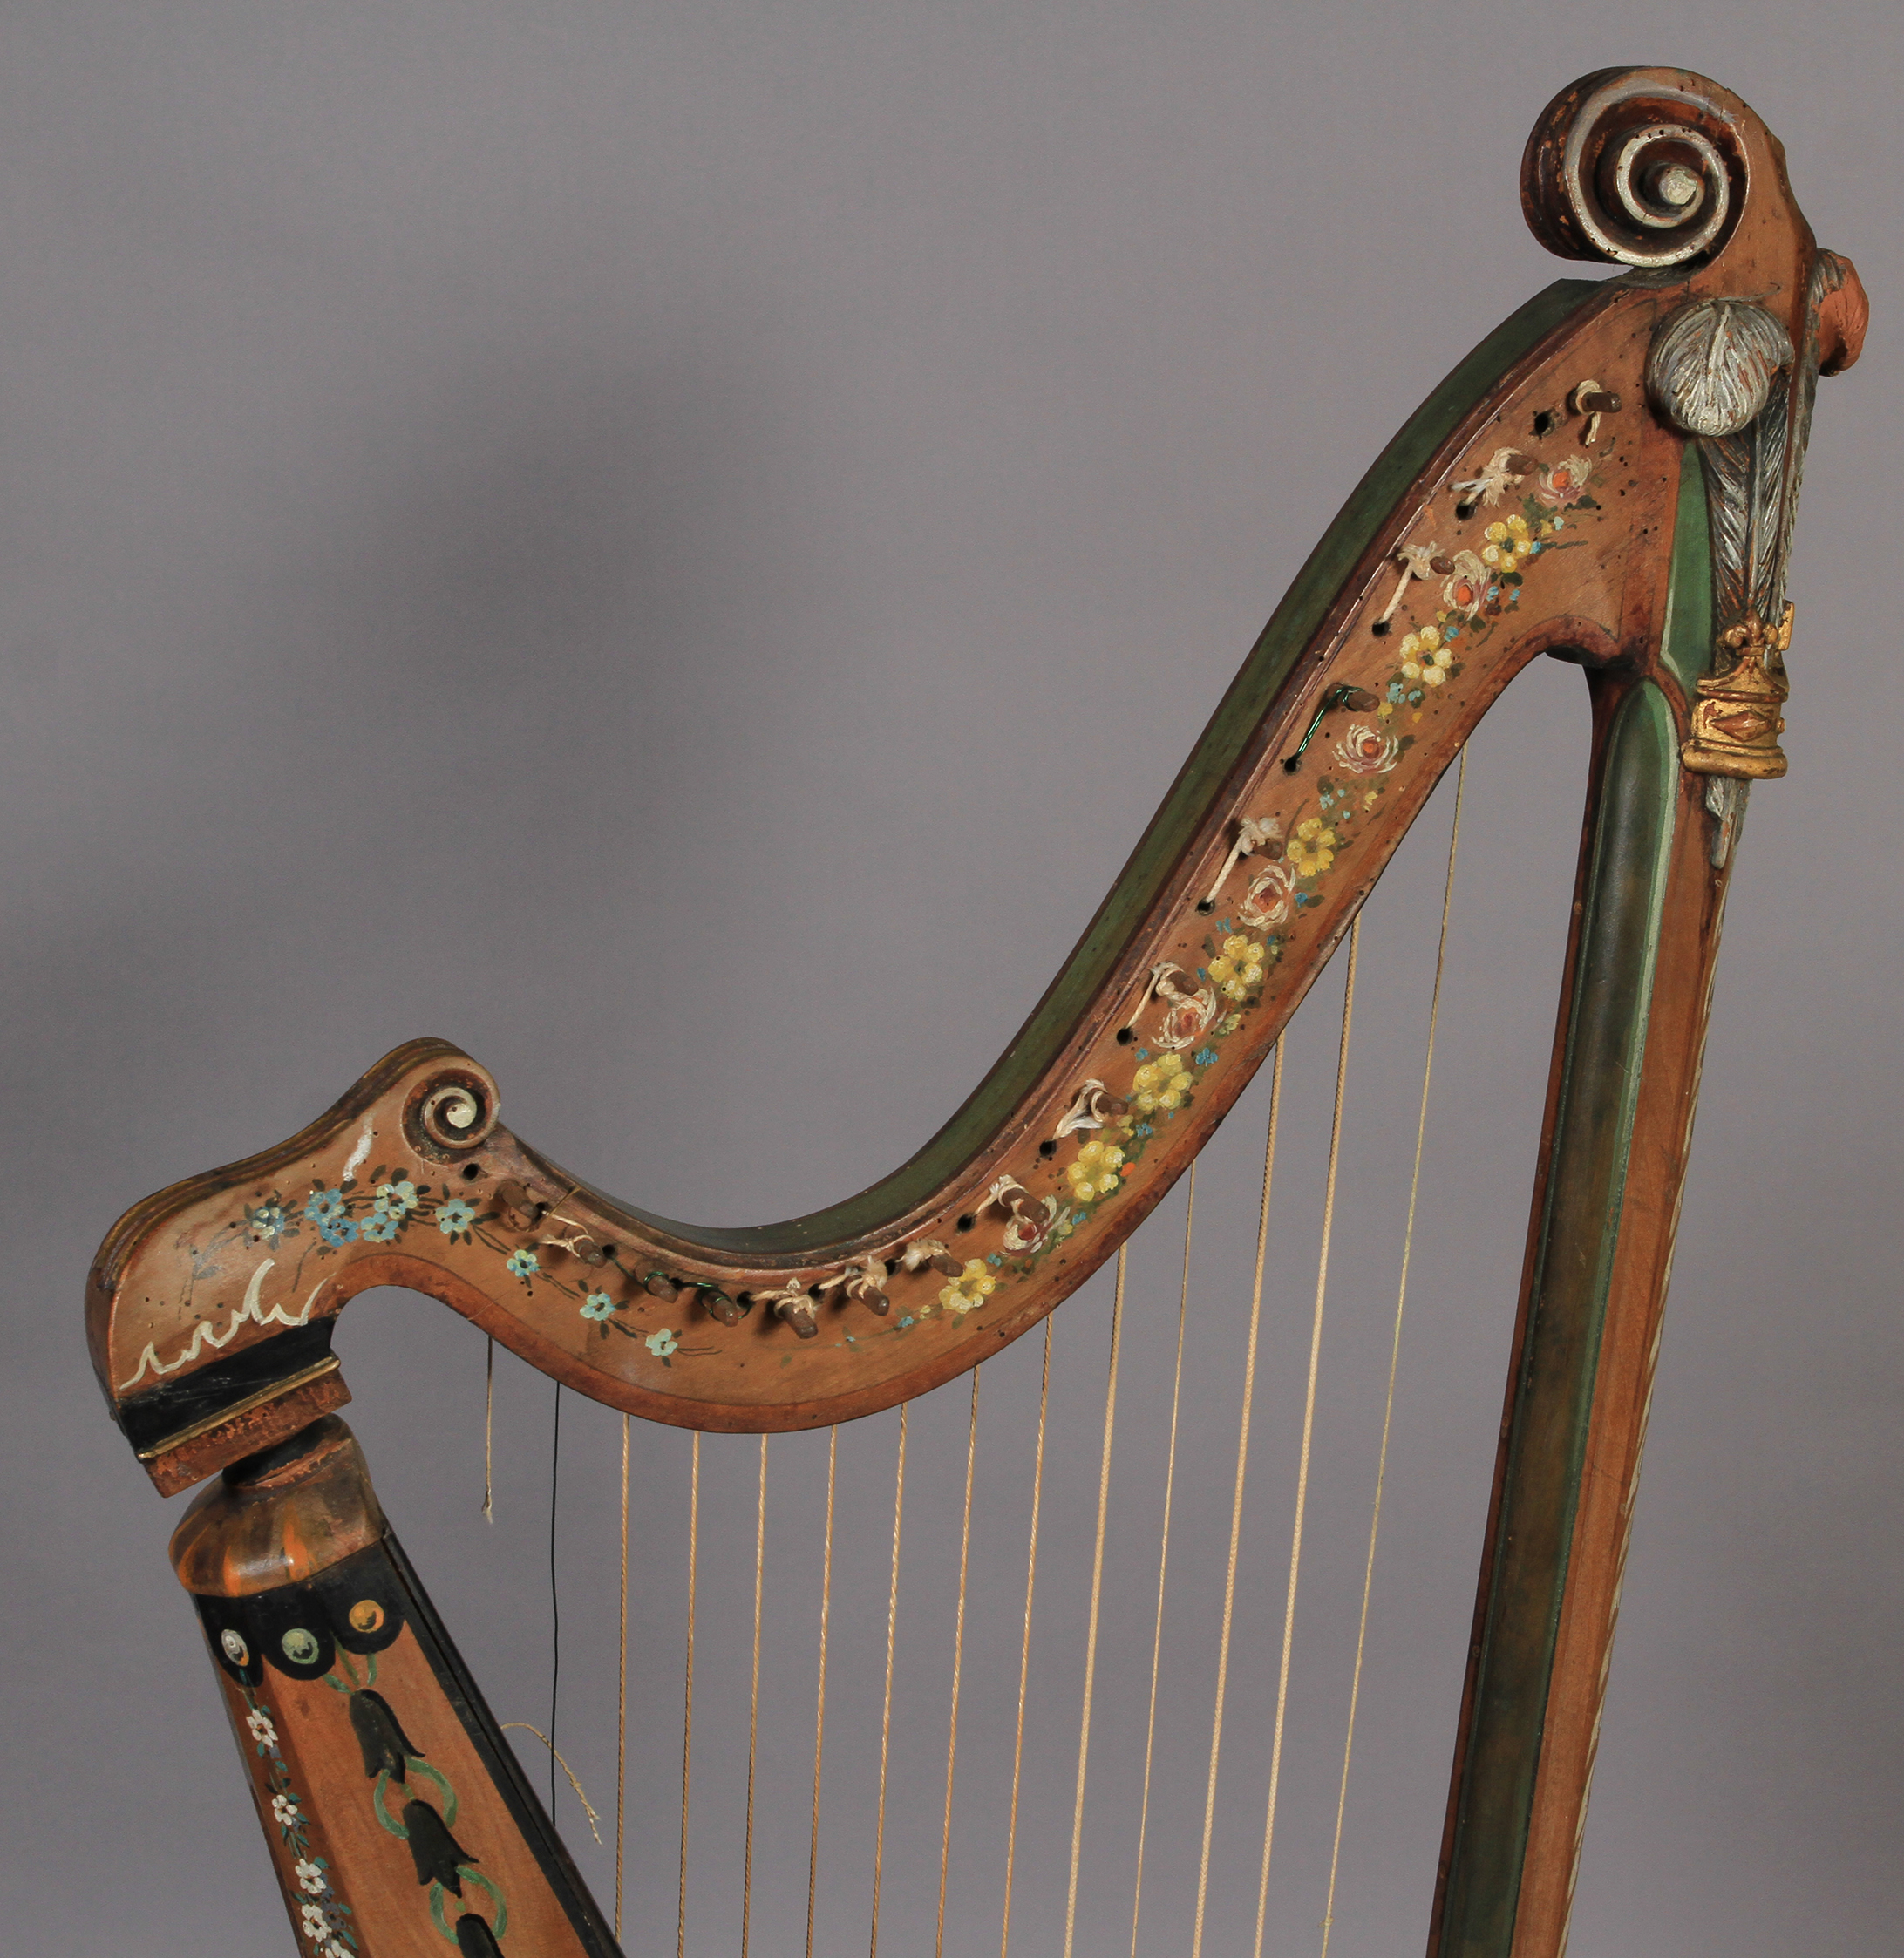 Lot 45 - A 19TH CENTURY PAINTED PINE HARP with scroll carved crown above 'Prince of Wales Feathers' and